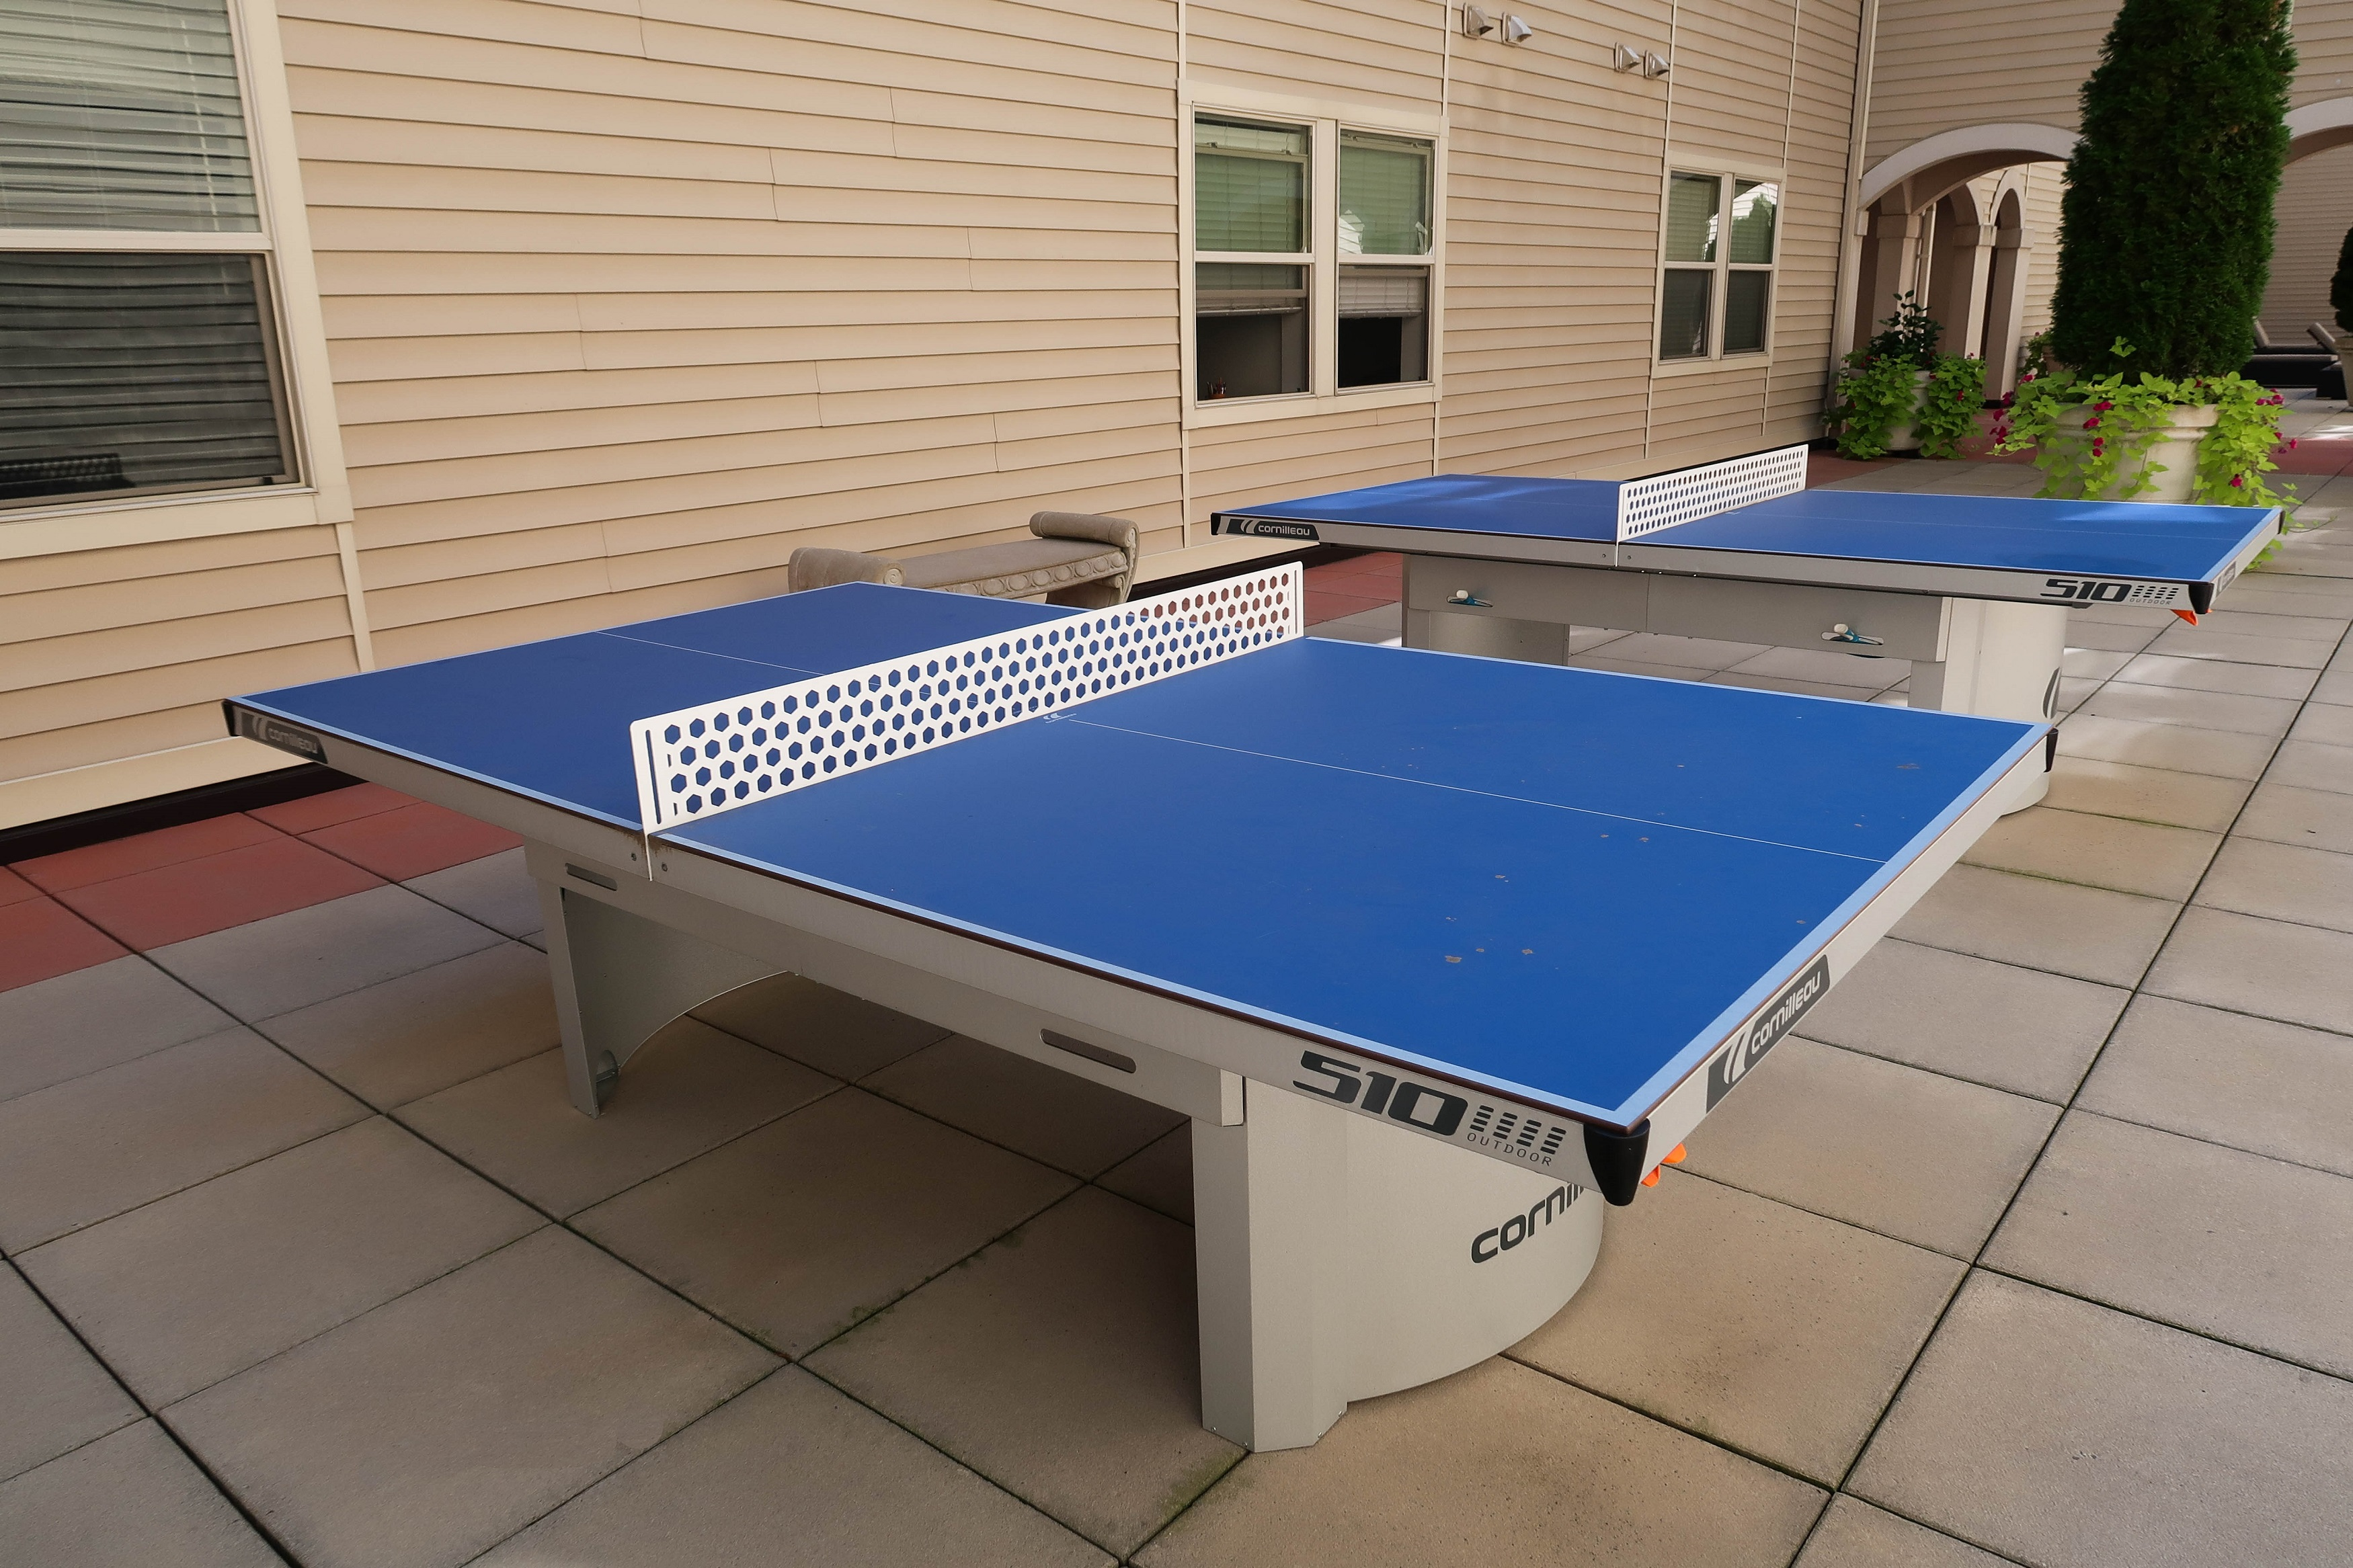 cornilleau 510 student housing ping pong table